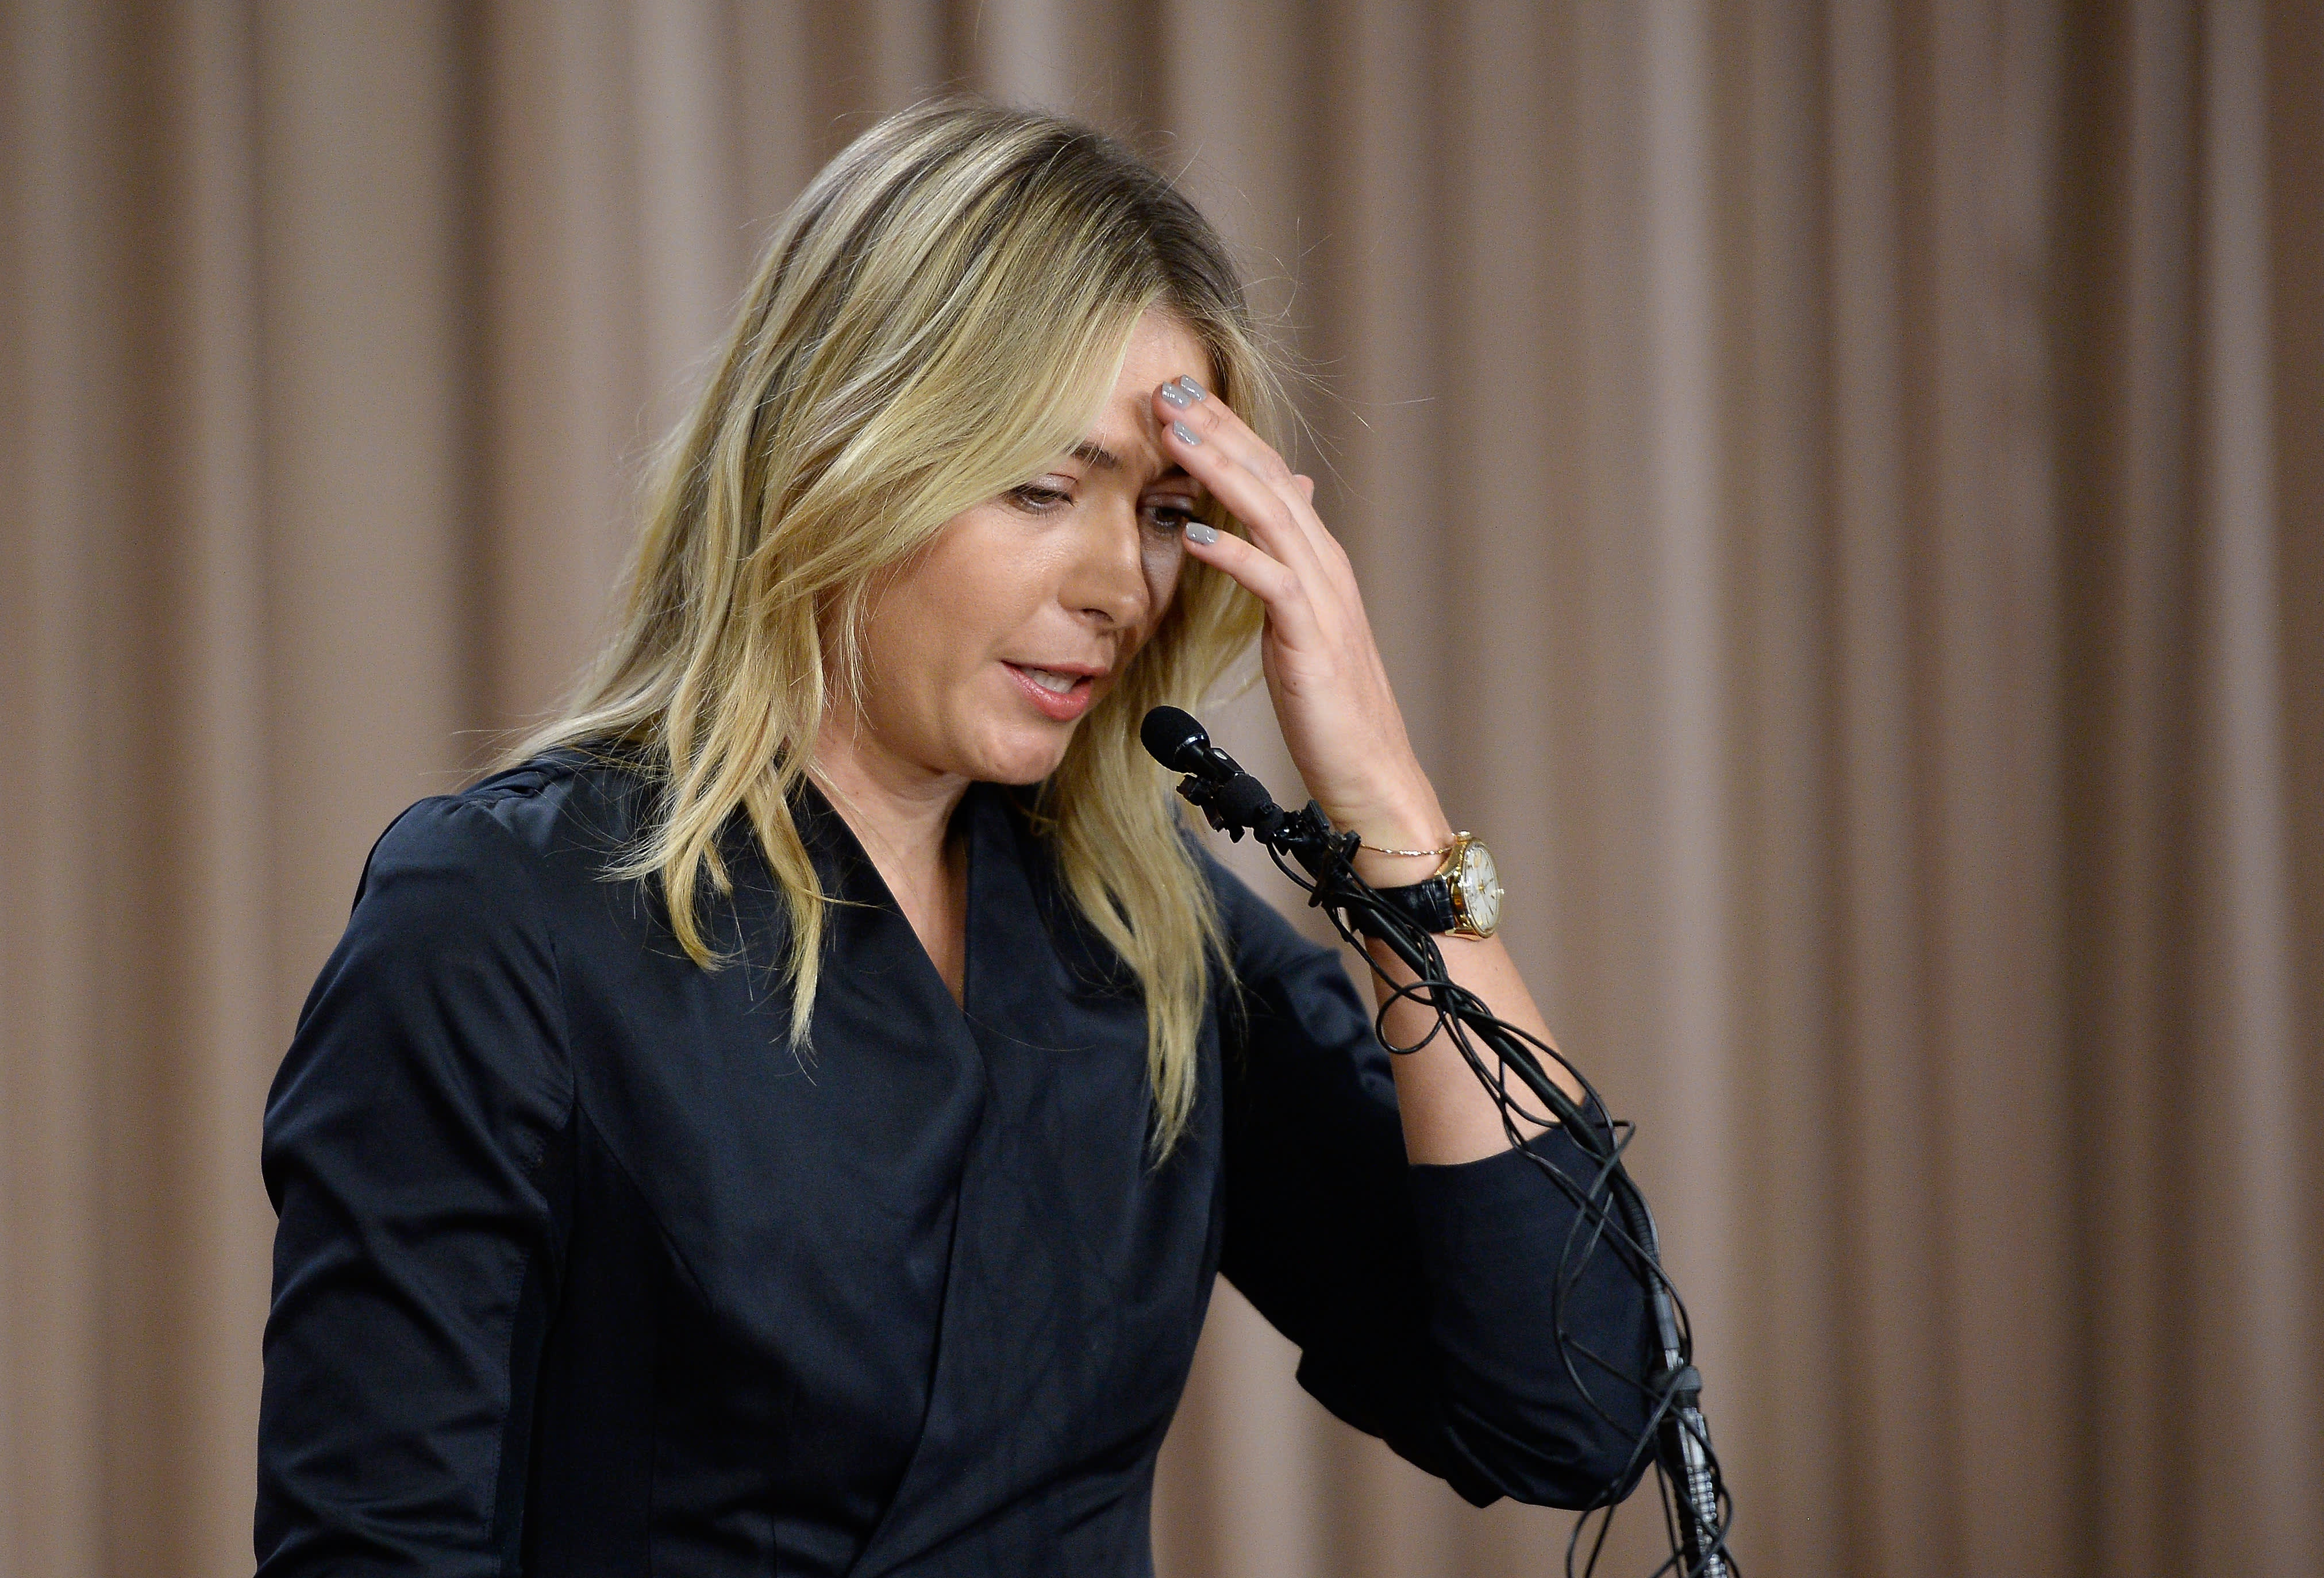 Maria Sharapova thanked the fans for the kind words 10.03.2016